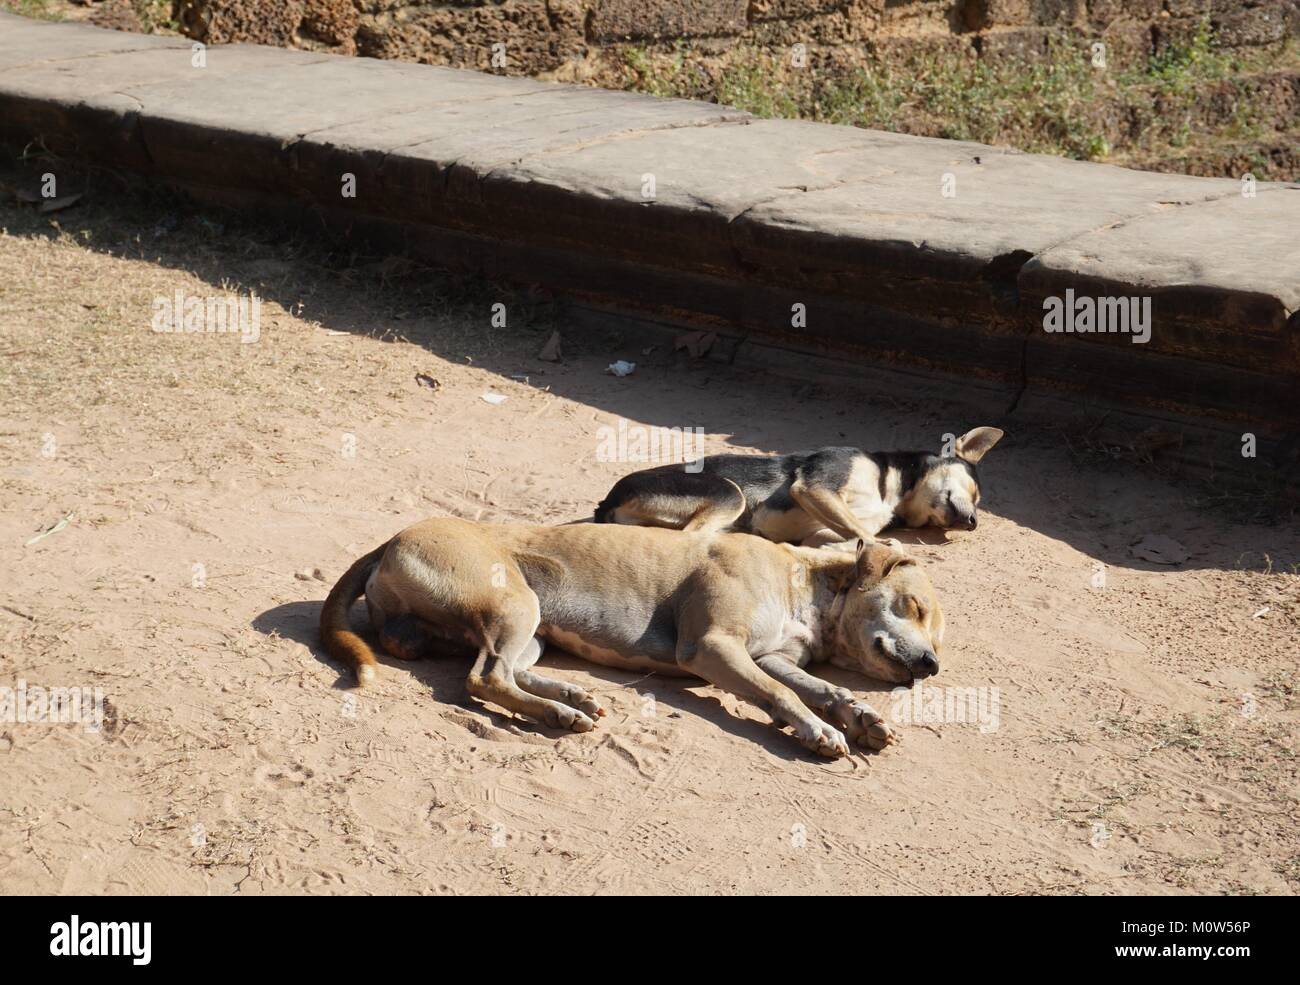 Two dogs in sharp focus relaxing in the warm cambodian sun - Stock Image